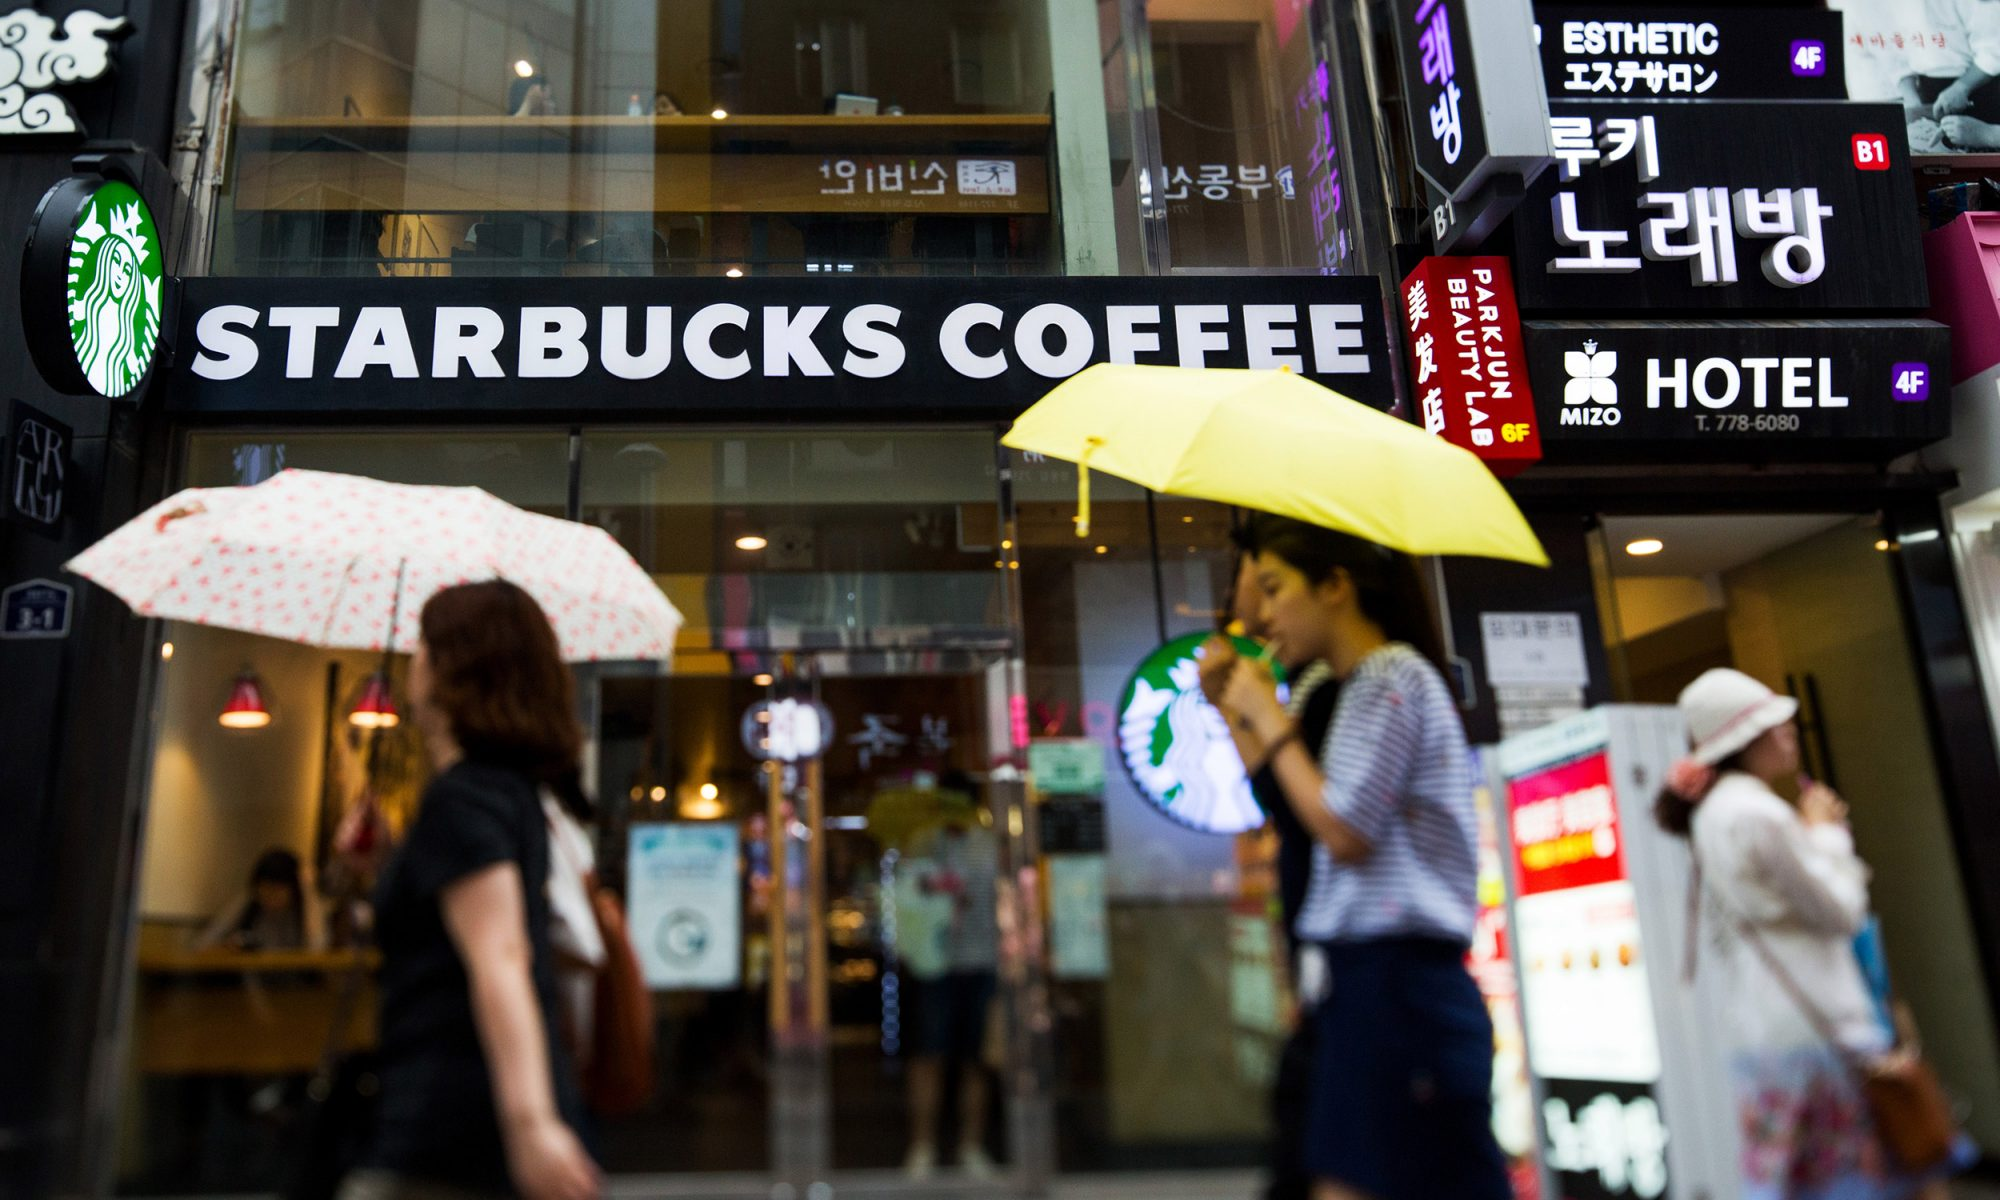 EC: 17 Starbucks Customer Ideas That Need to Be Implemented Now